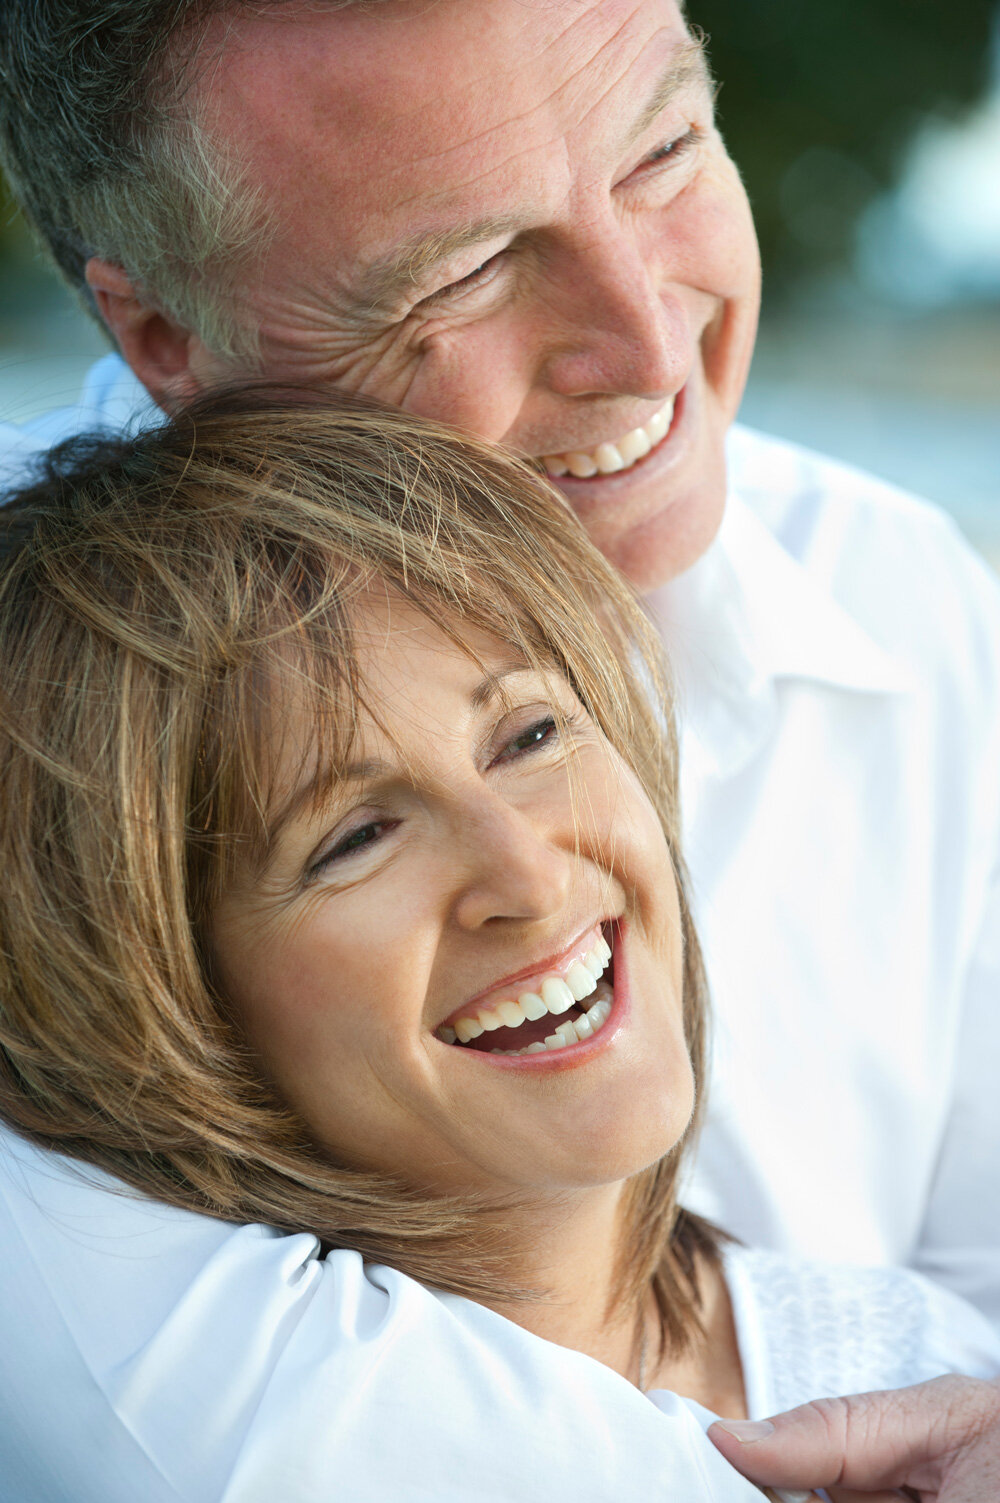 Why choose dental implants? - Dental implants offer an attractive, long-lasting solution for missing teeth.Implants facilitate natural speech and full oral functionalityDental implants are made to look and feel like your own teethWith dental implants you will have a confident smile once againDental implants are a modern, convenient and comfortable option.